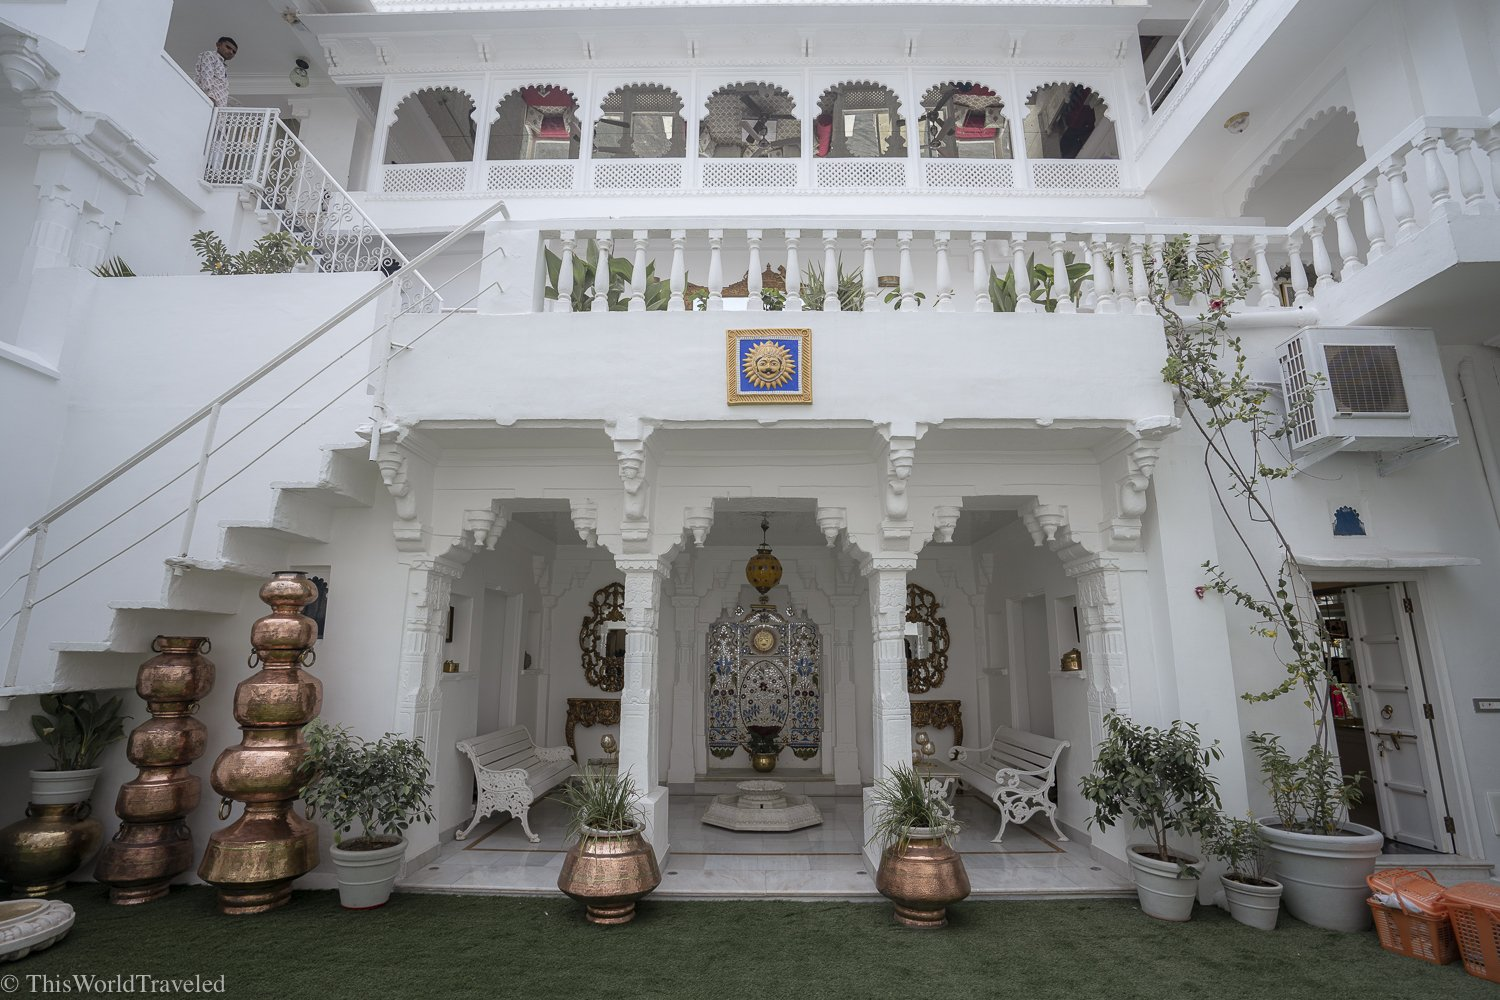 The interior of the Jagat Niwas Palace hotel and the stunning details